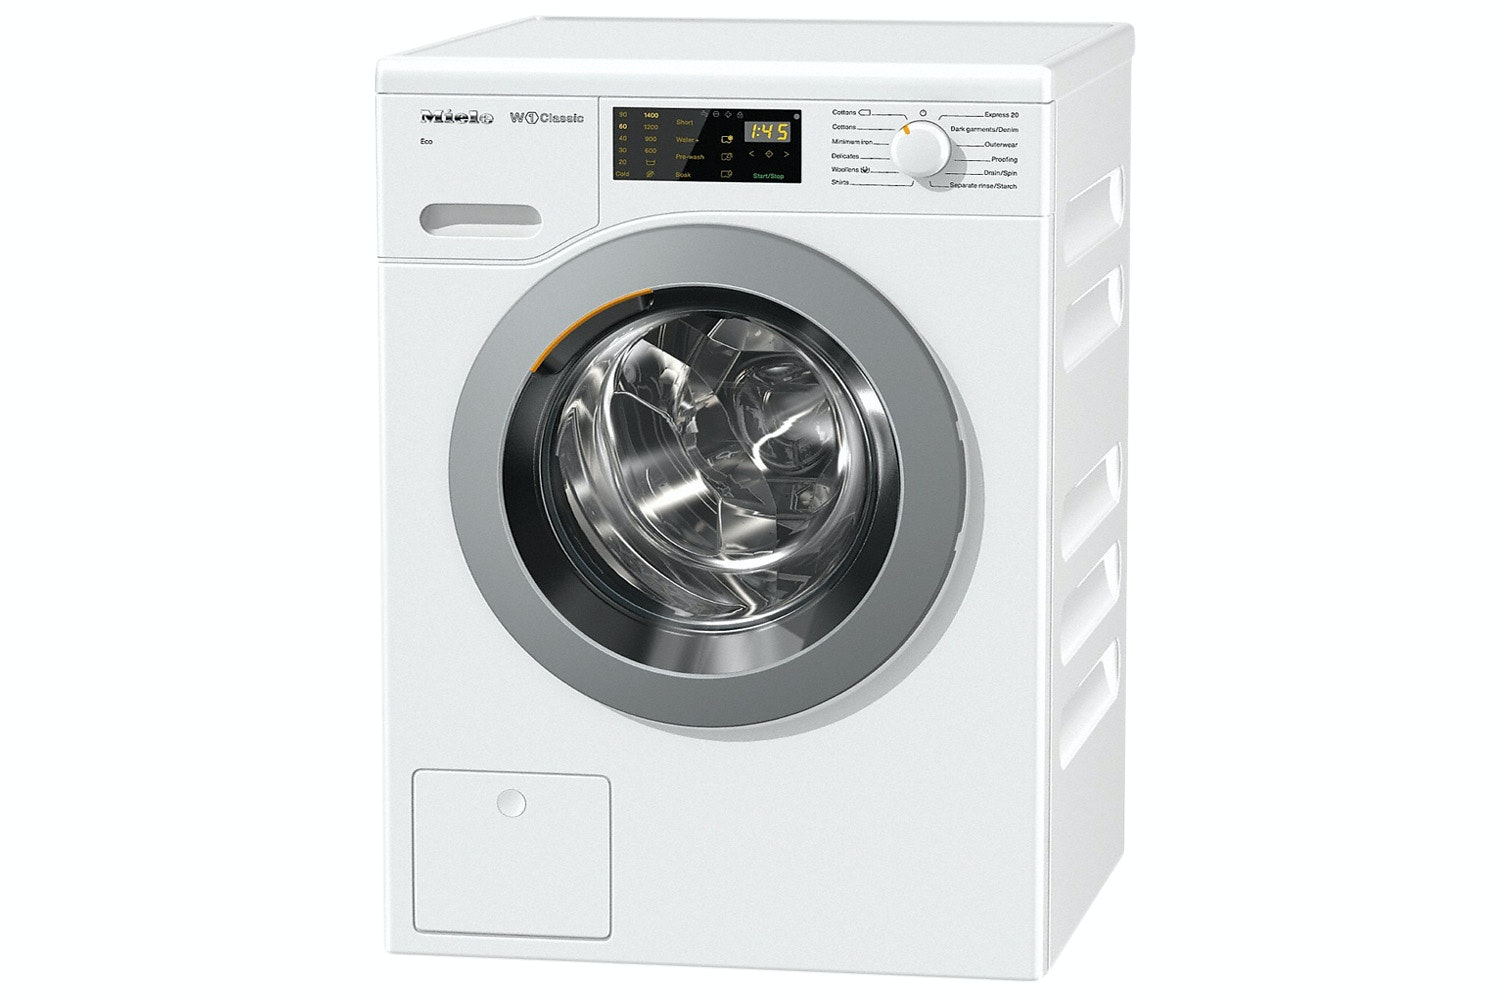 Miele W1 Classic-WDB020  front-loading washing  machine  for 1-7 kg of laundry